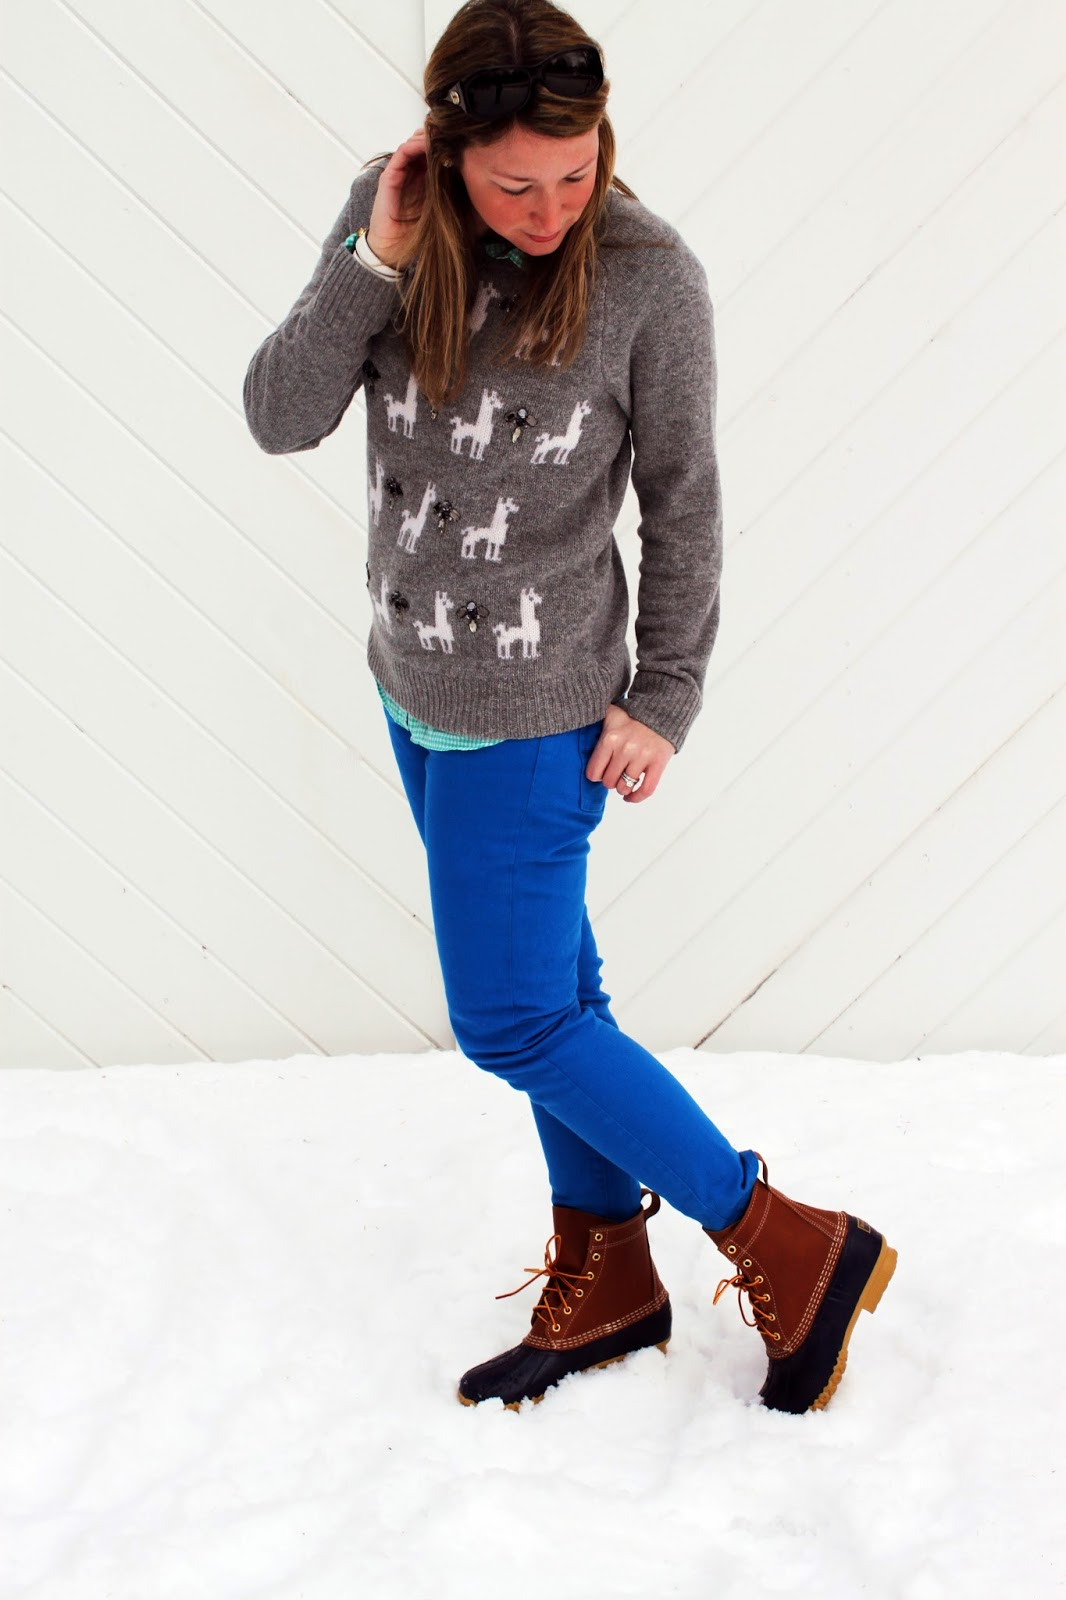 The Salty Hanger :: Llama Beans (L.L.Bean Boots and J.Crew)